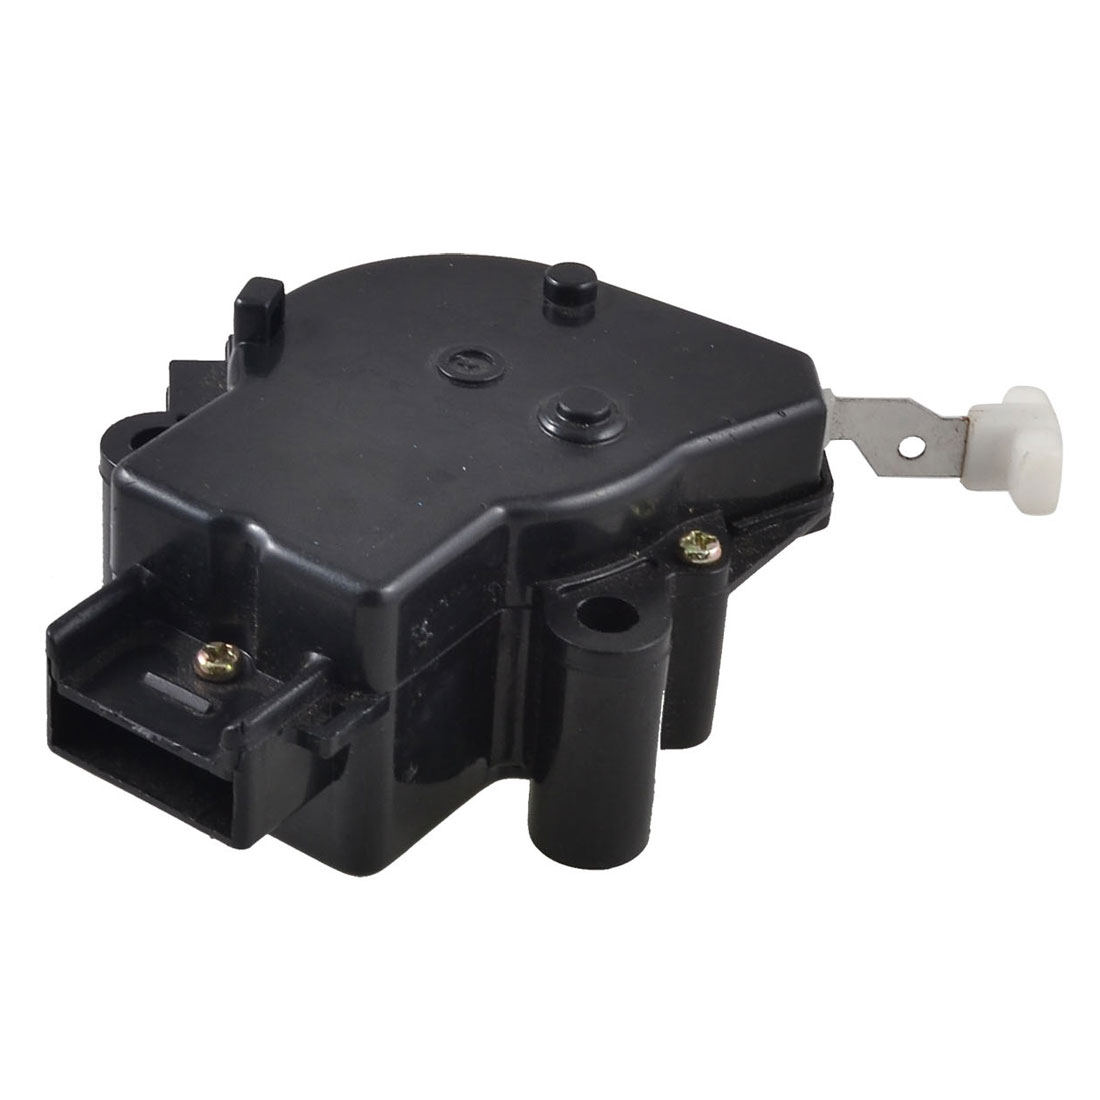 Spare Part AC 220V 50Hz Drain Valve Tractor Black for Washing Machine